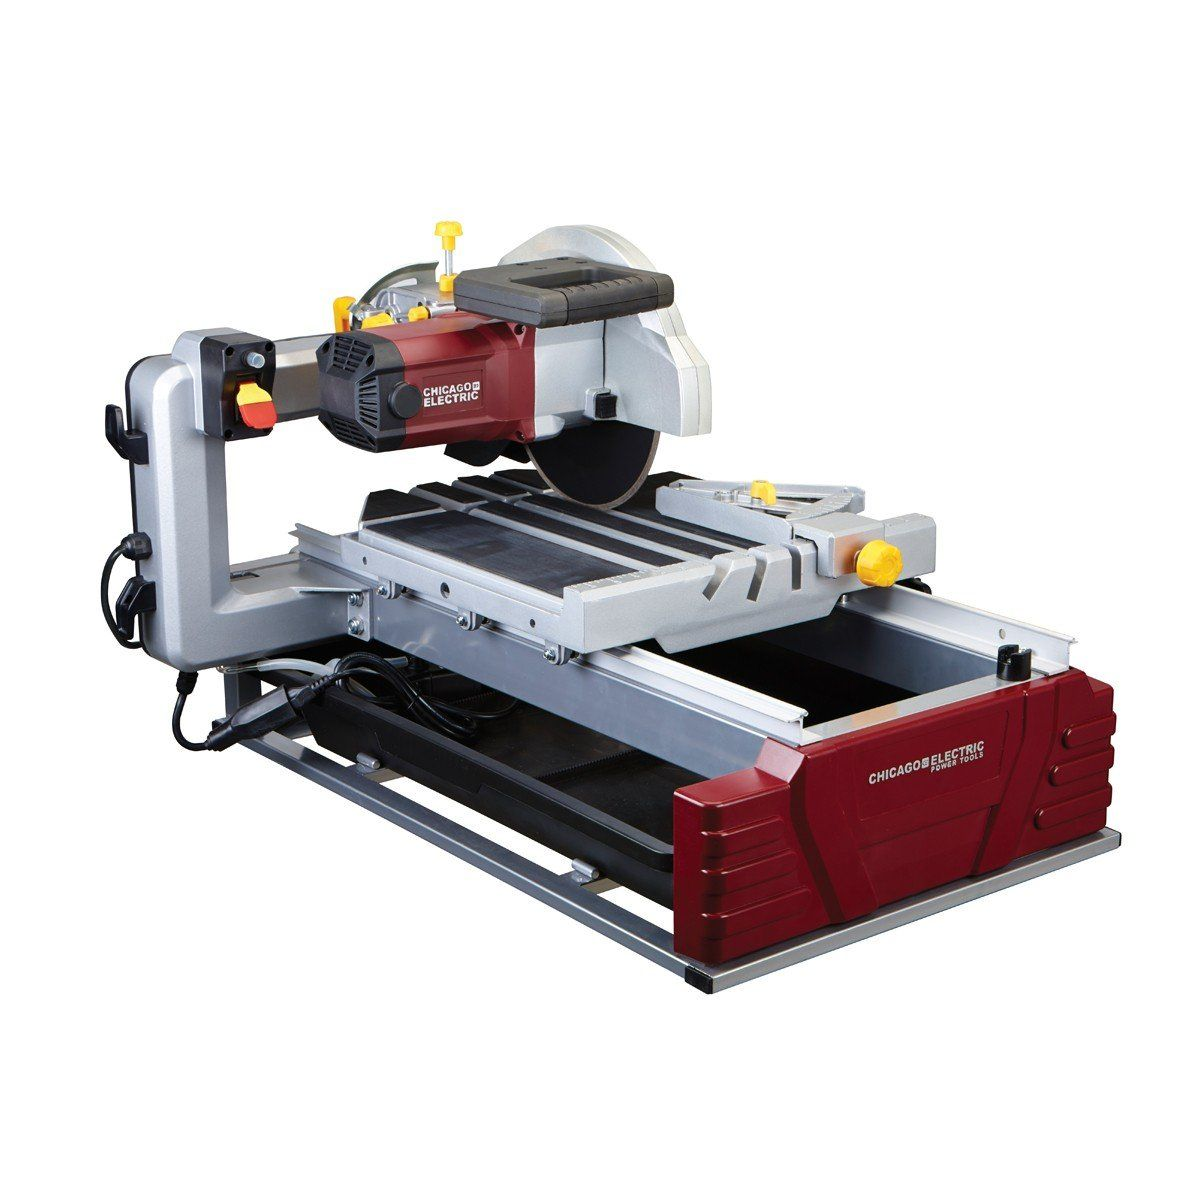 Chicago Electronic 2 5 Hp 10 Inch Wet Tile Saw Brick Saw Table Saw Tile Saw